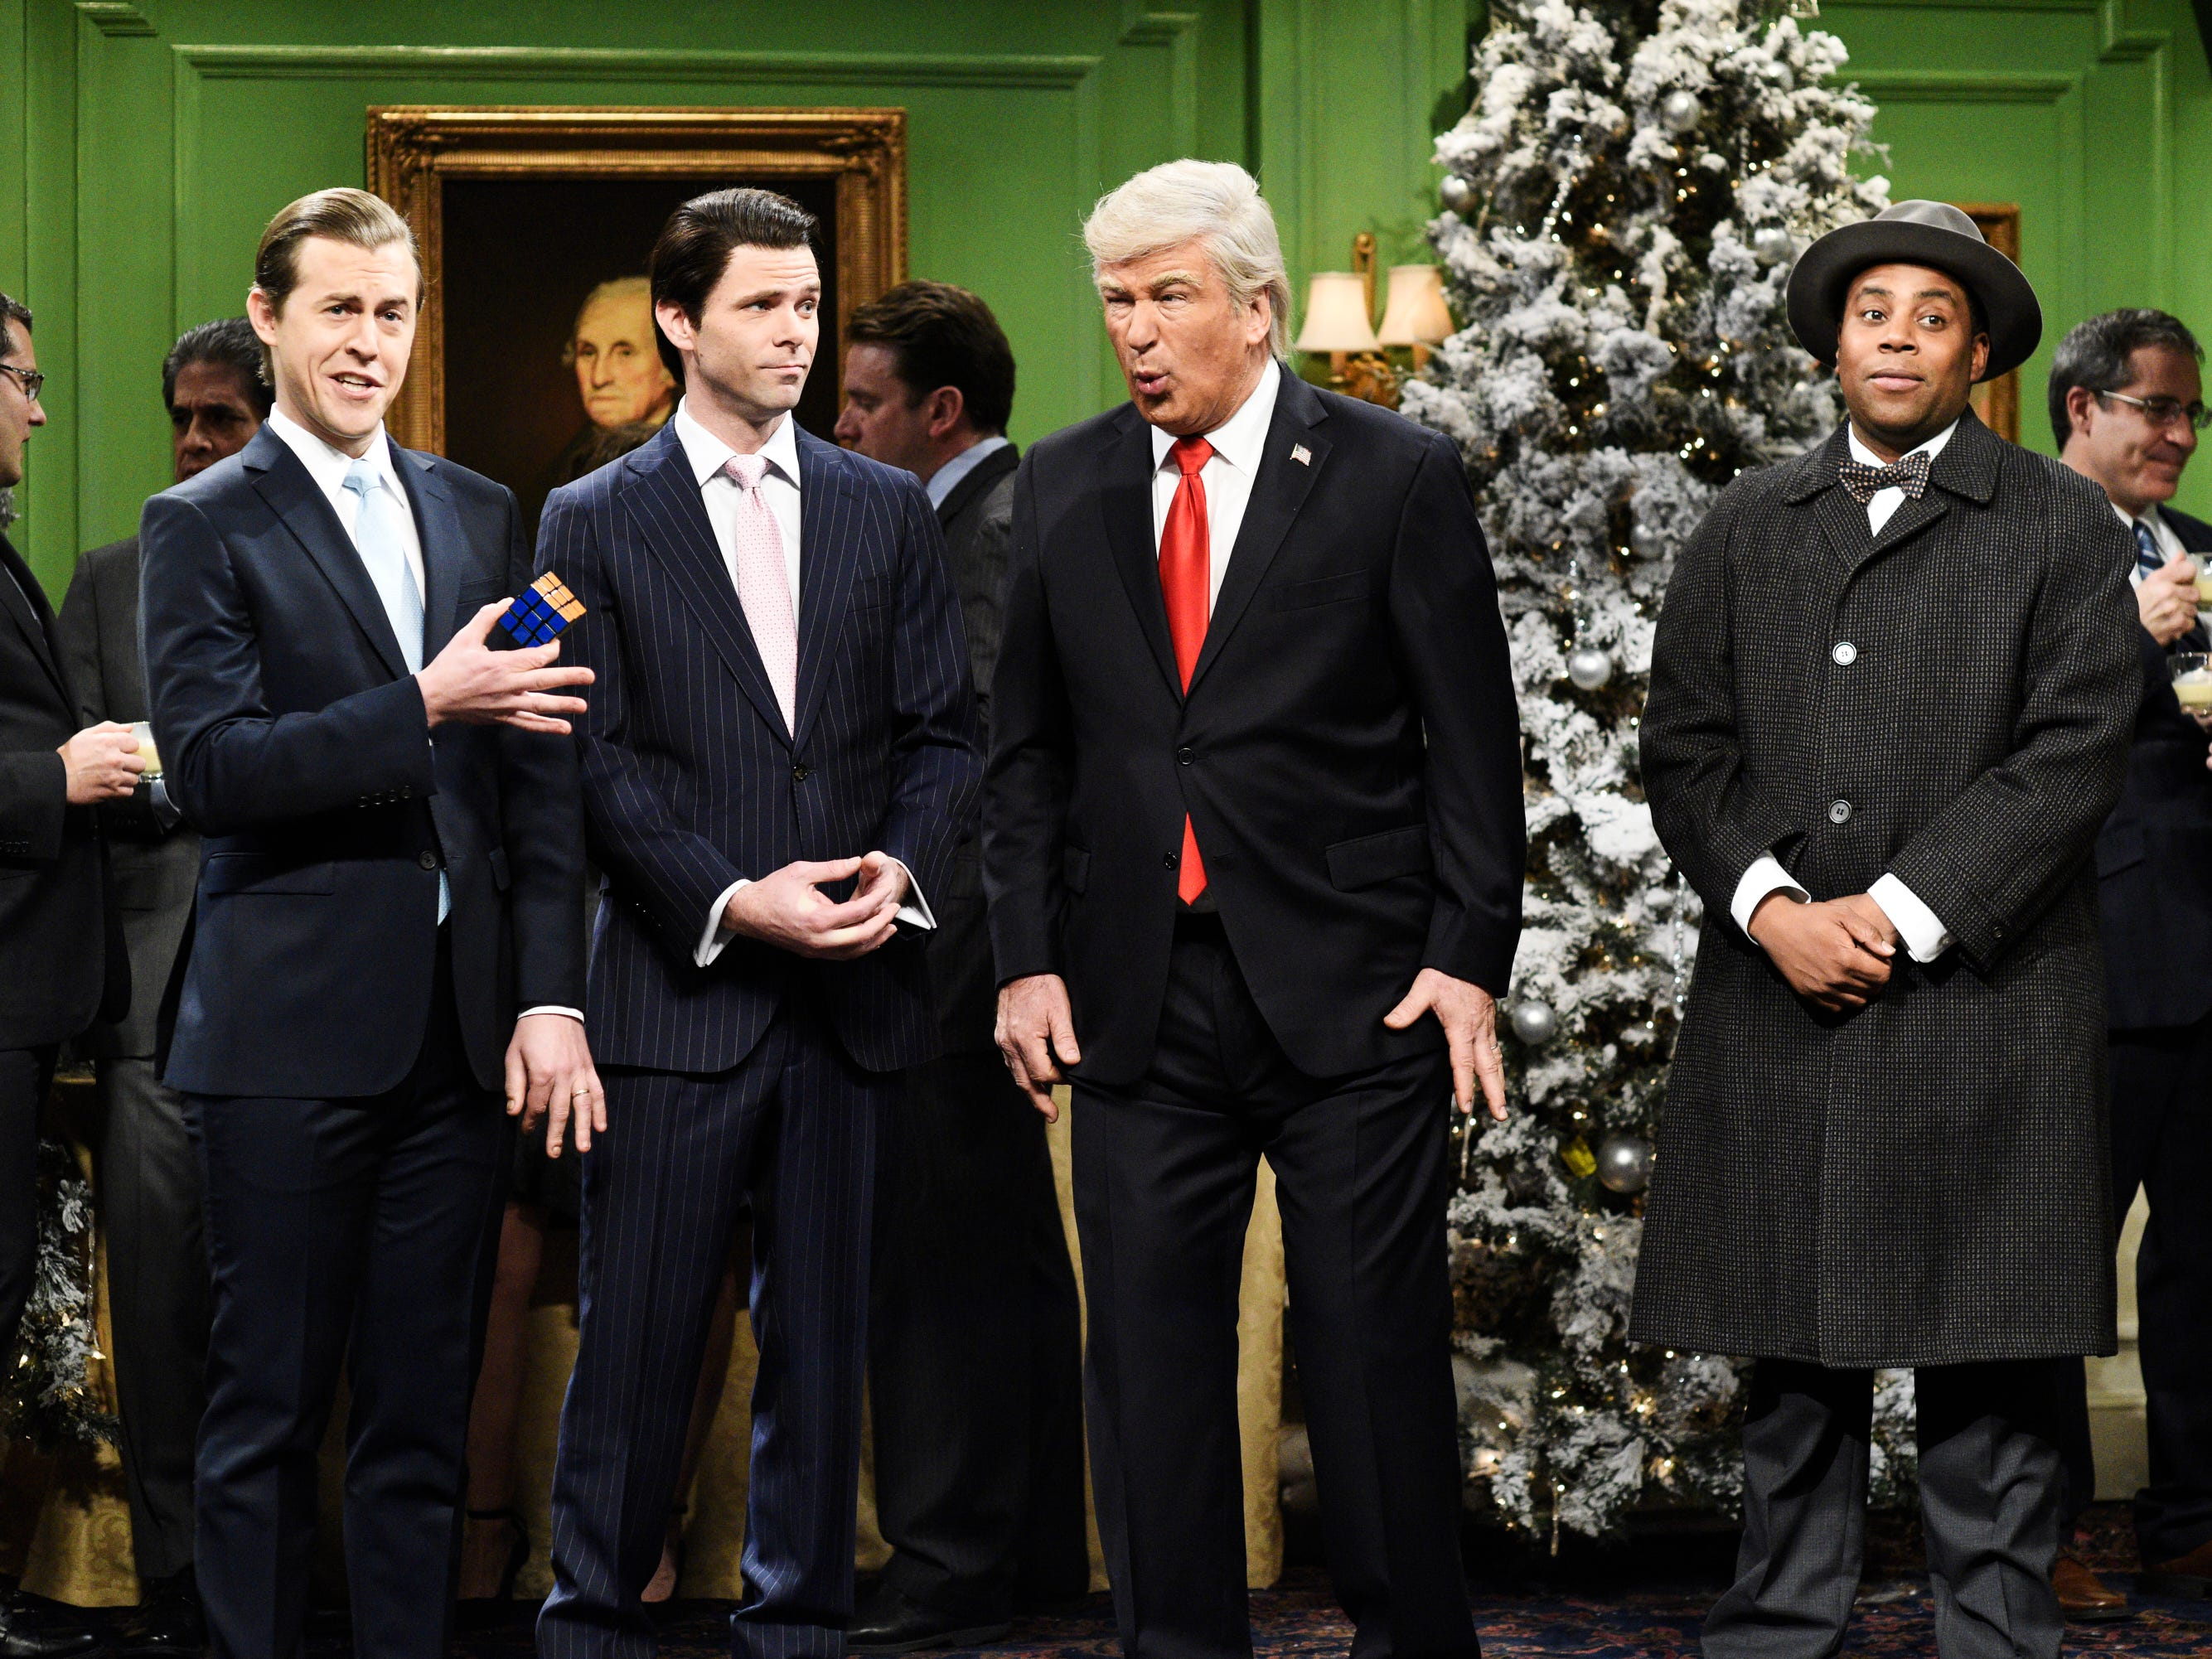 """Saturday Night Live"" kicked off their Christmas episode with Donald Trump in a parody version of the classic ""It's a Wonderful Life."" The sketch drew the ire of the president, who, in a tweet the day after the show, questioned whether parodies like this could be tested in a court."